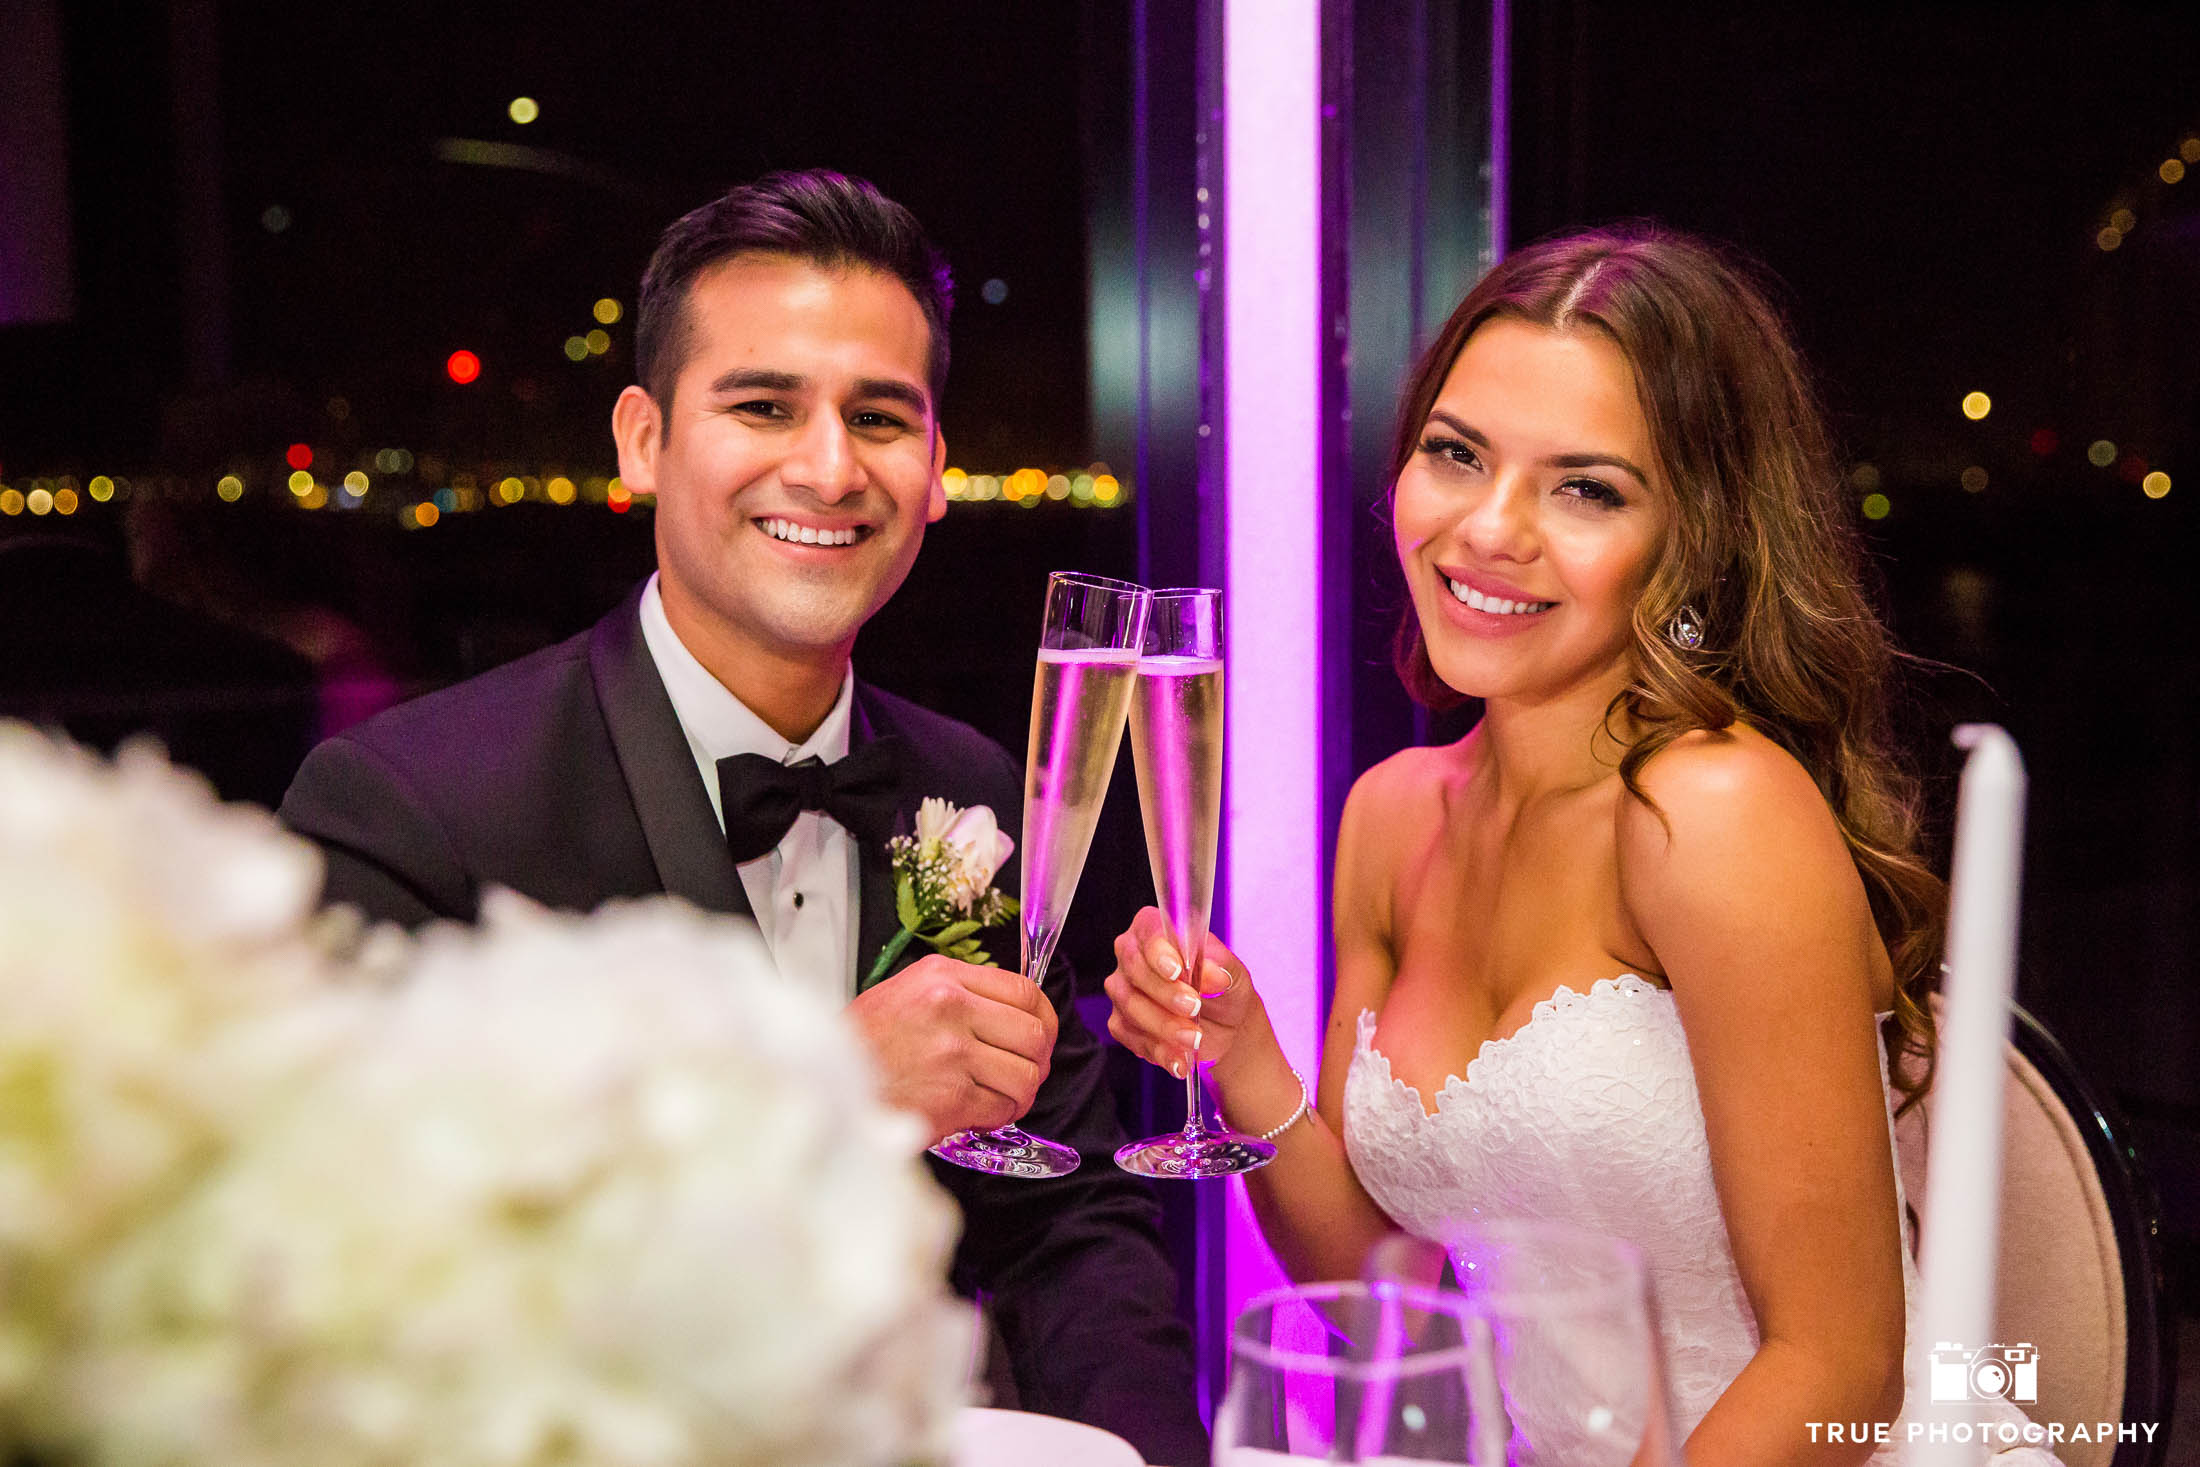 Bride and Groom smile at camera for champagne toast during reception